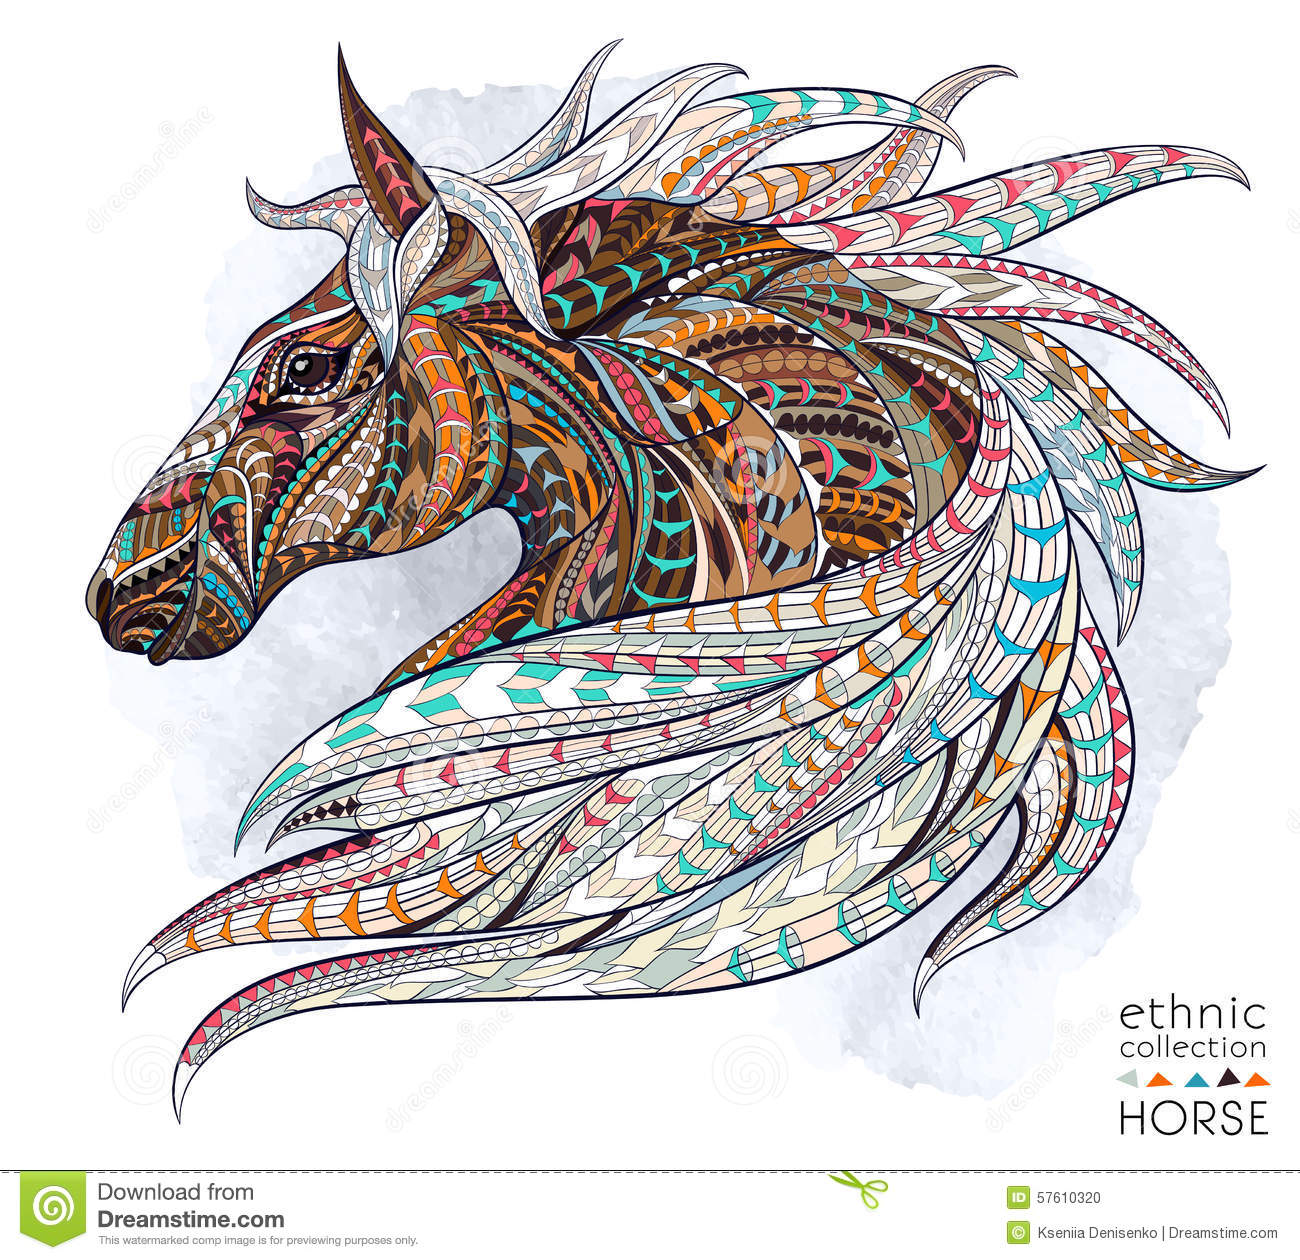 Patterned head of the horse